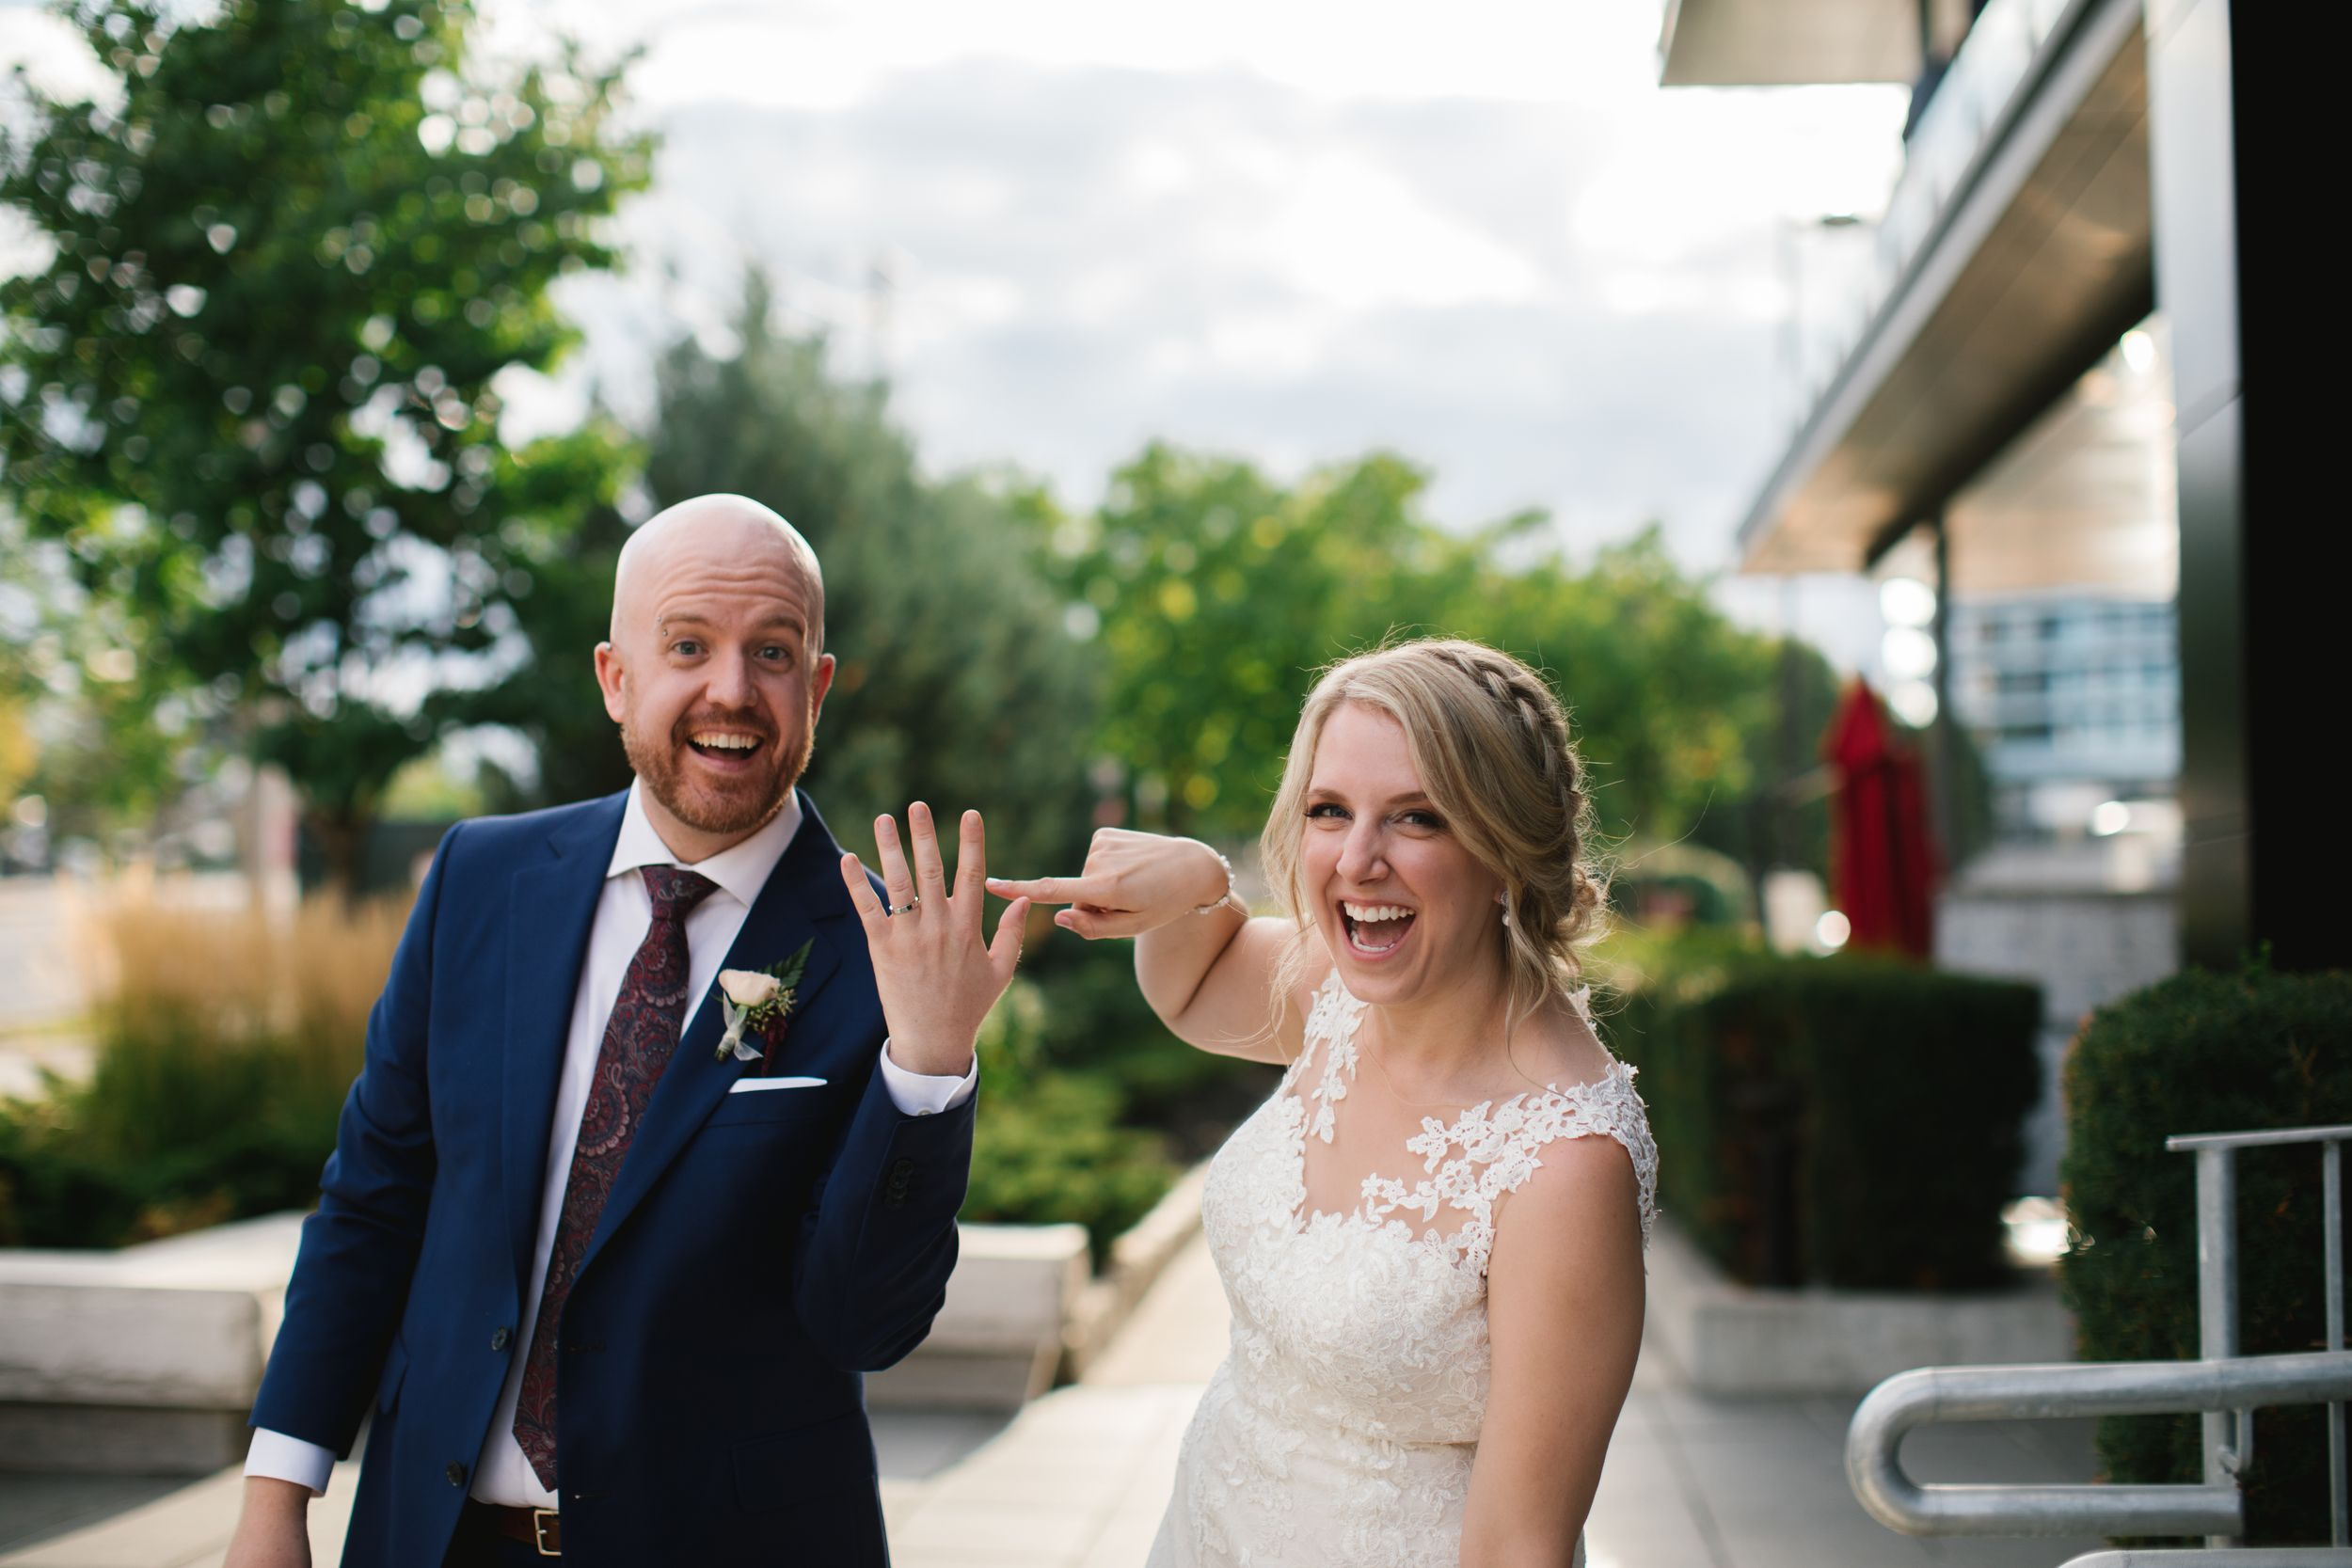 bride laughing and pointing at grooms ring finger